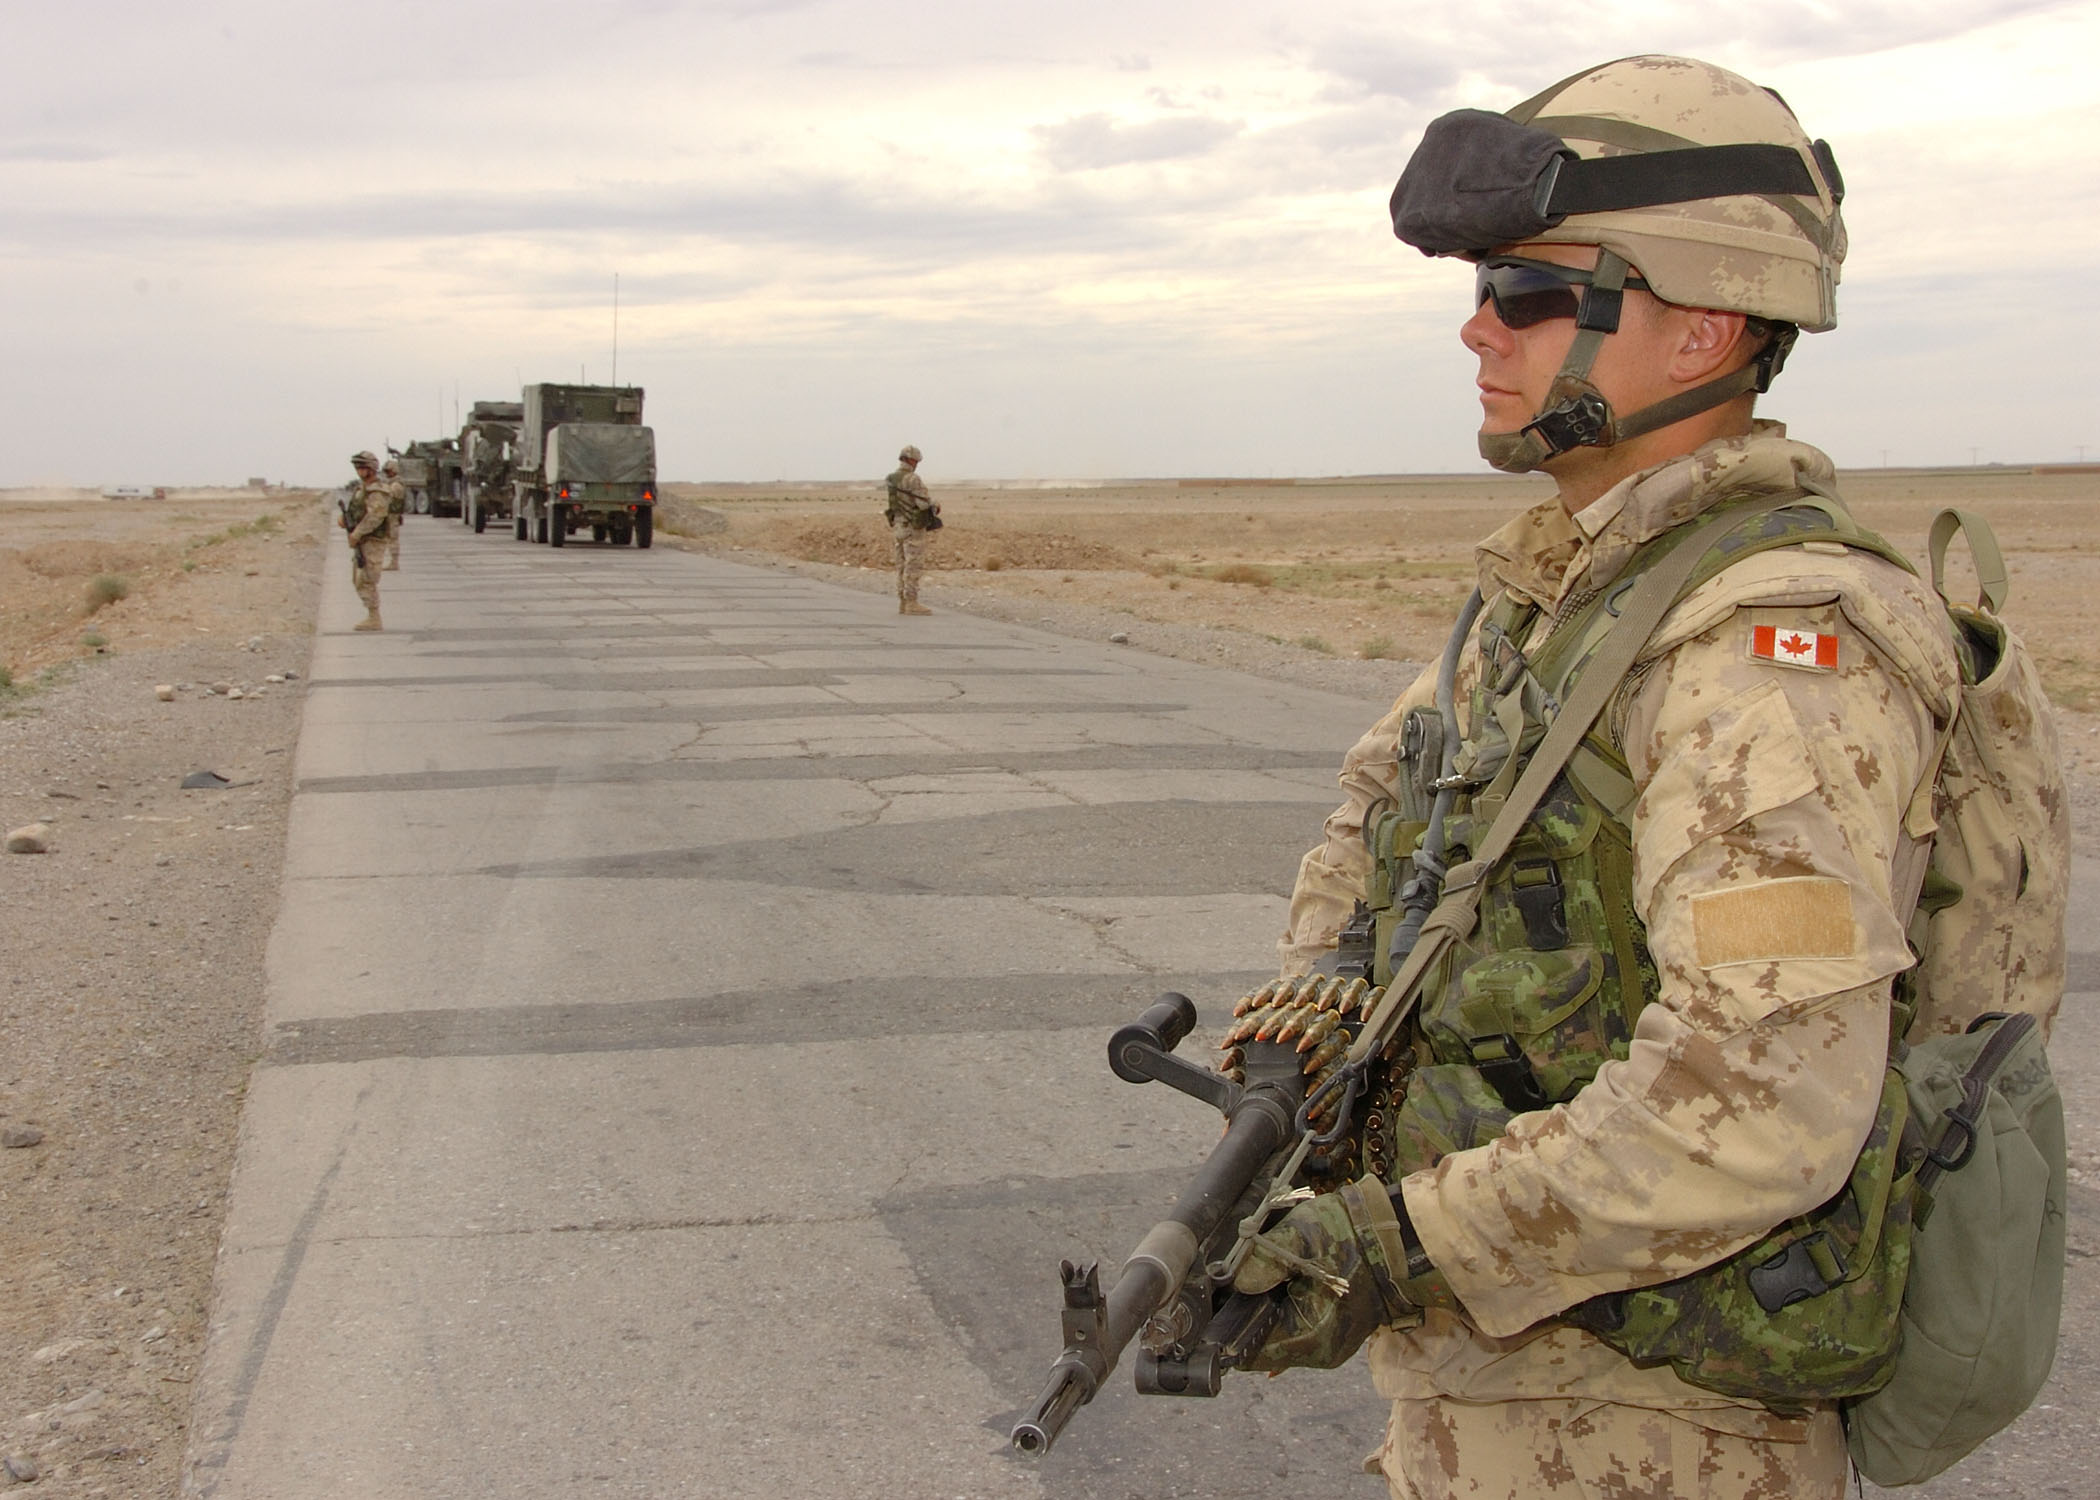 Photo of Bryce Keller – Cpl Bryce Keller 1 Princess Patricia's Canadian Light Infantry (1PPCLI) stands guard outside of a Light Armoured Vehicle (LAV), during a stop while part of a large convoy traveling to a Forward Operating Base (FOB) in the province of Kandahar.